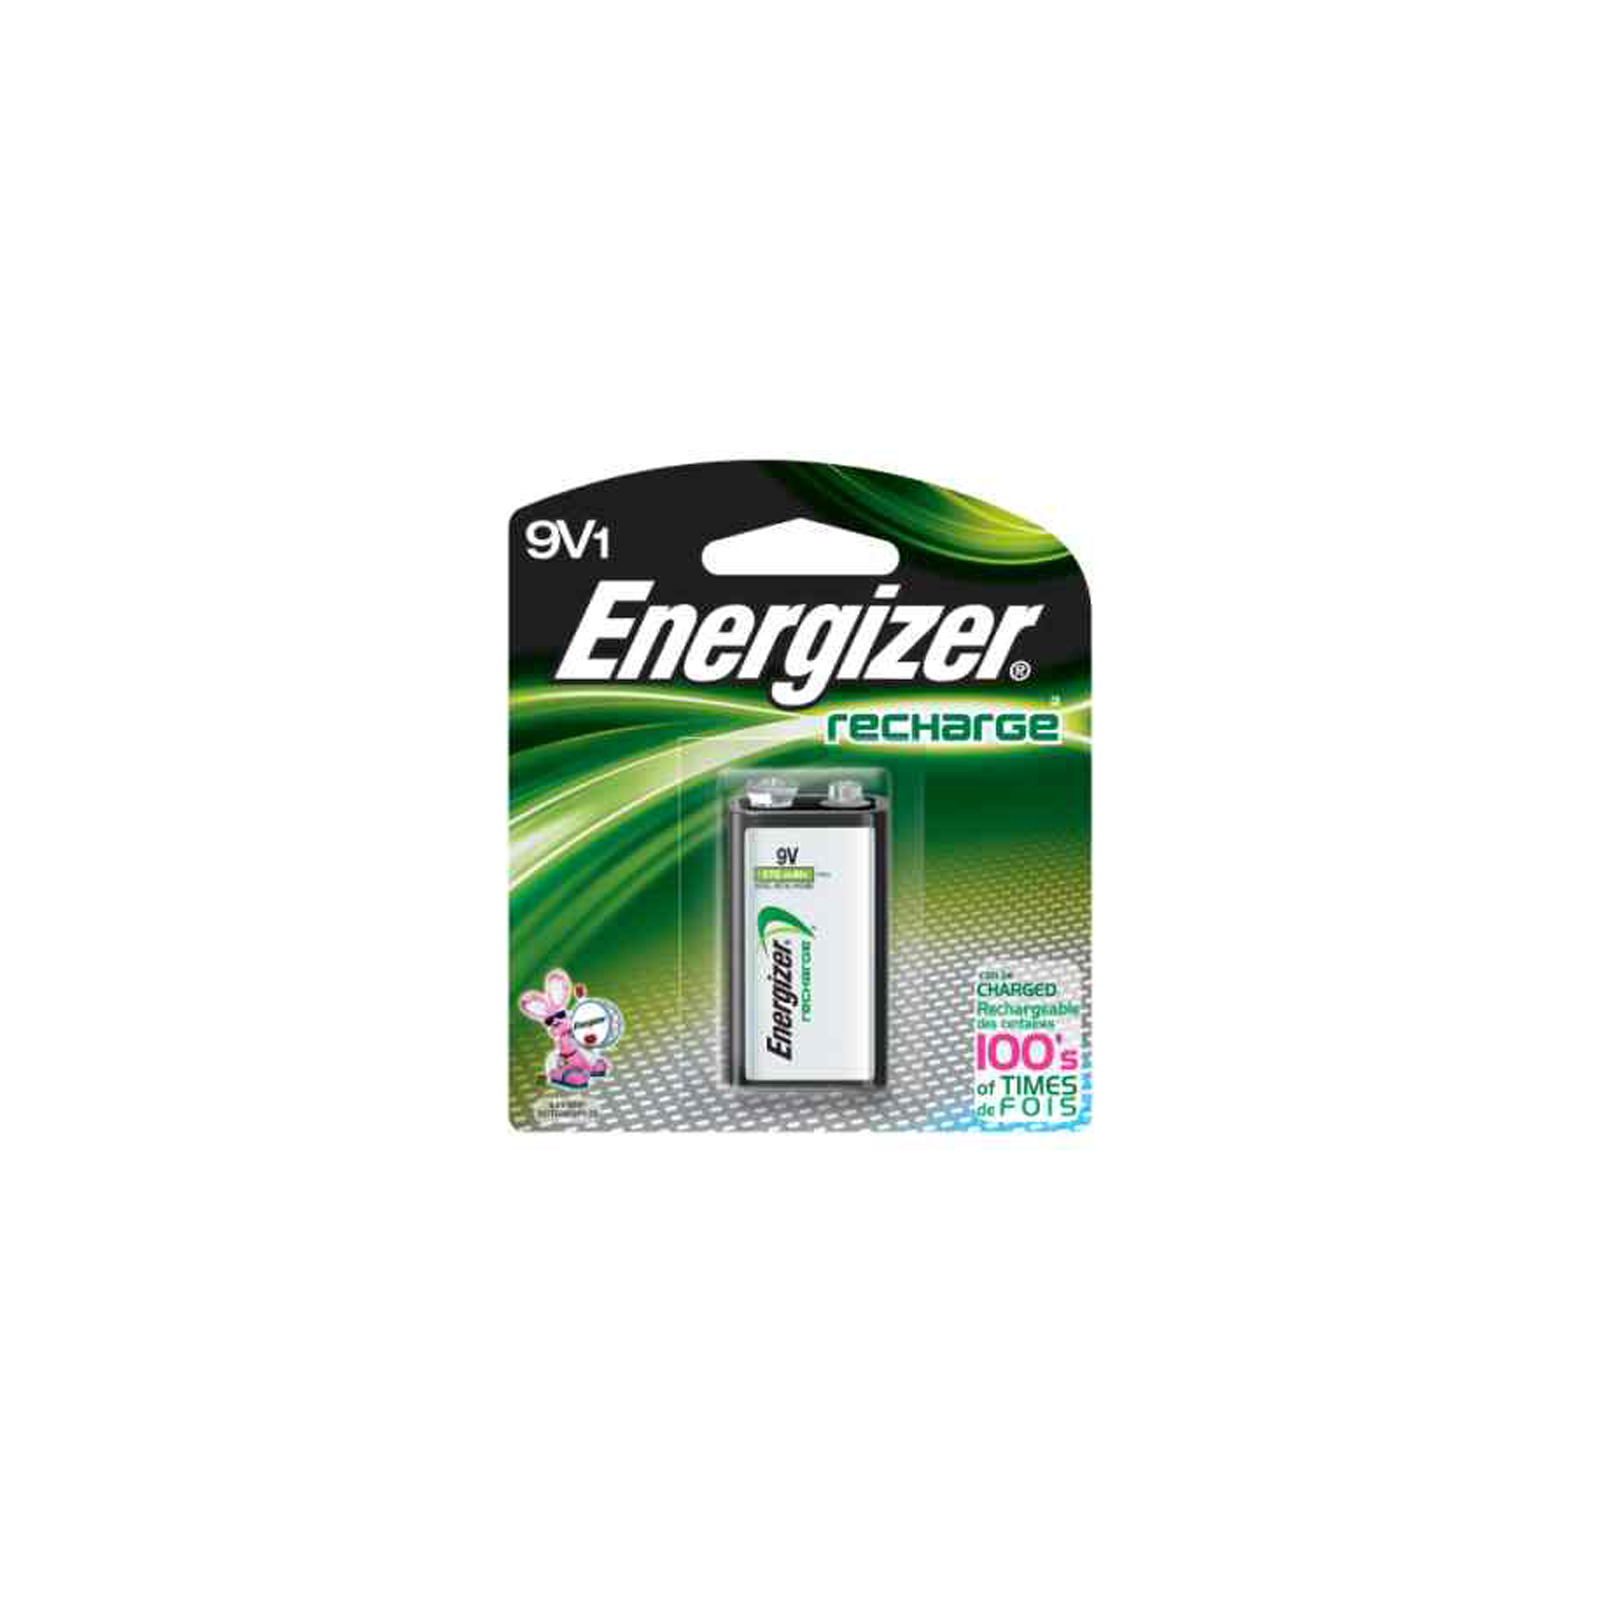 9 Volt Rechargeable Battery Energizer Recharge 9v Rechargeable Battery Nimh 8 4v